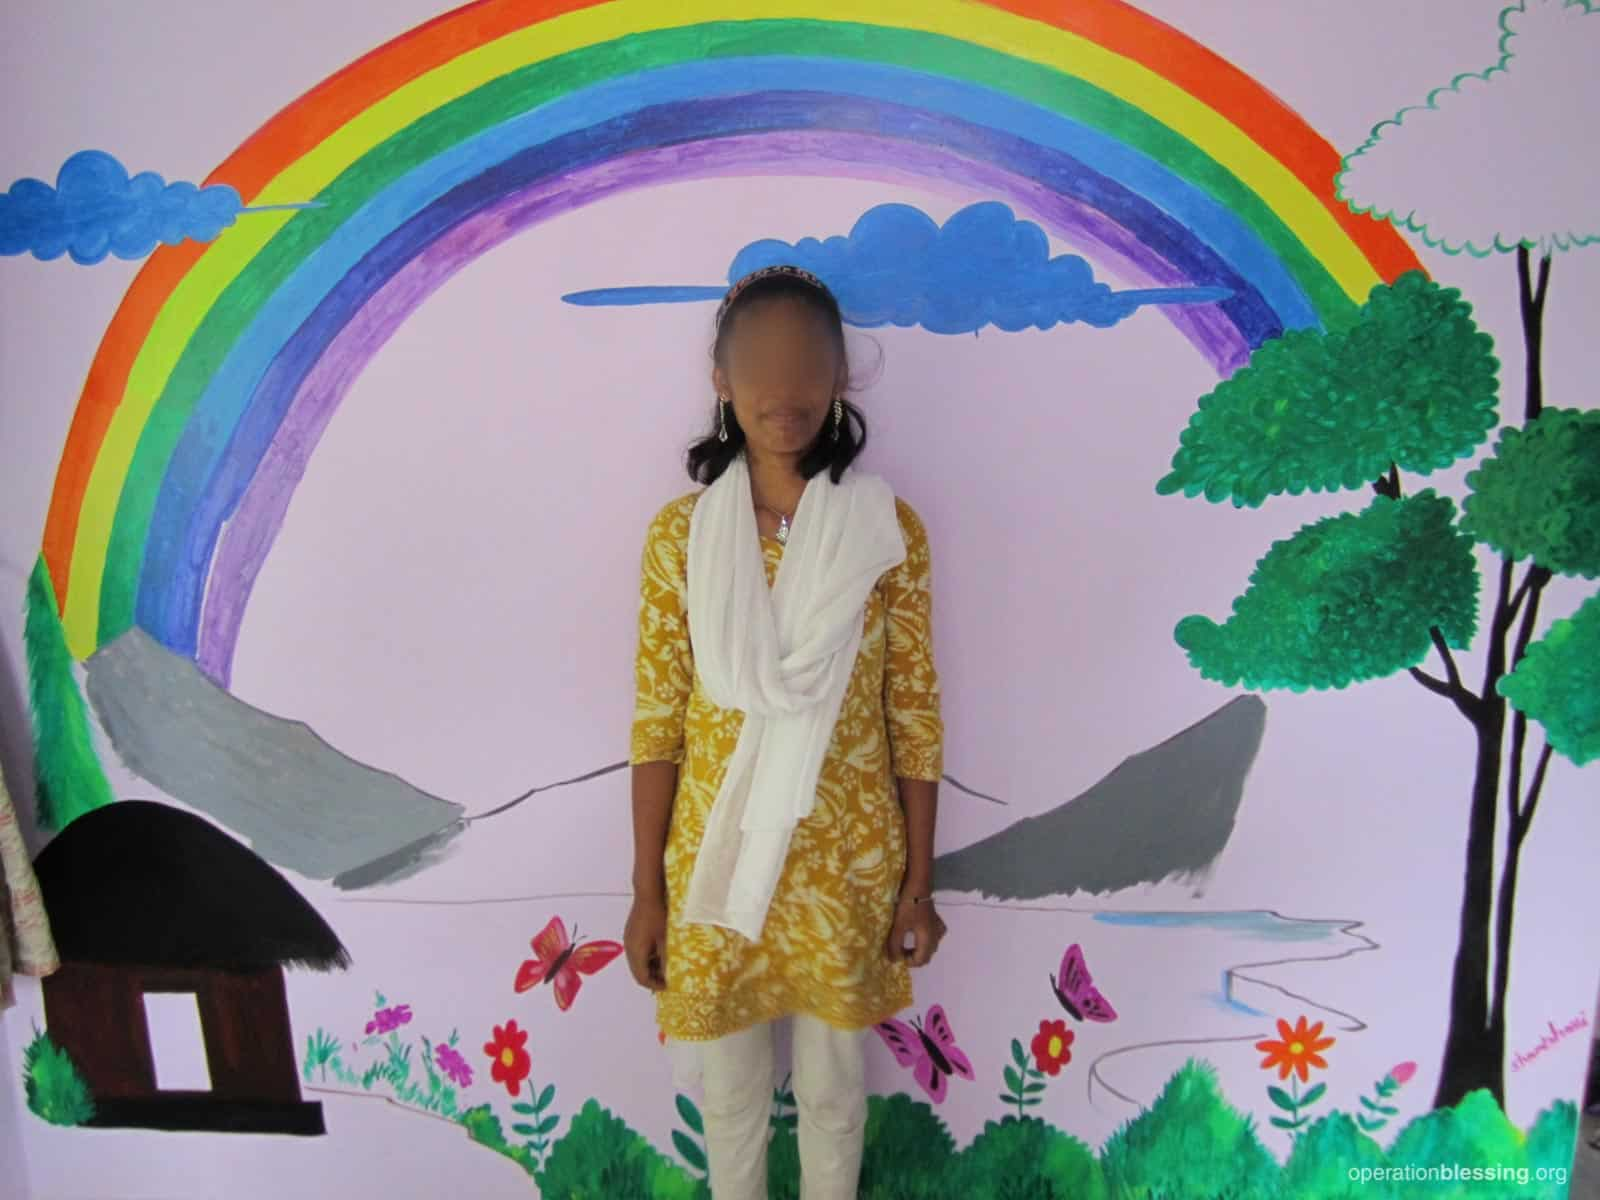 Naseen stands under a painted rainbow, no longer a prisoner of the darkness of the brothel.